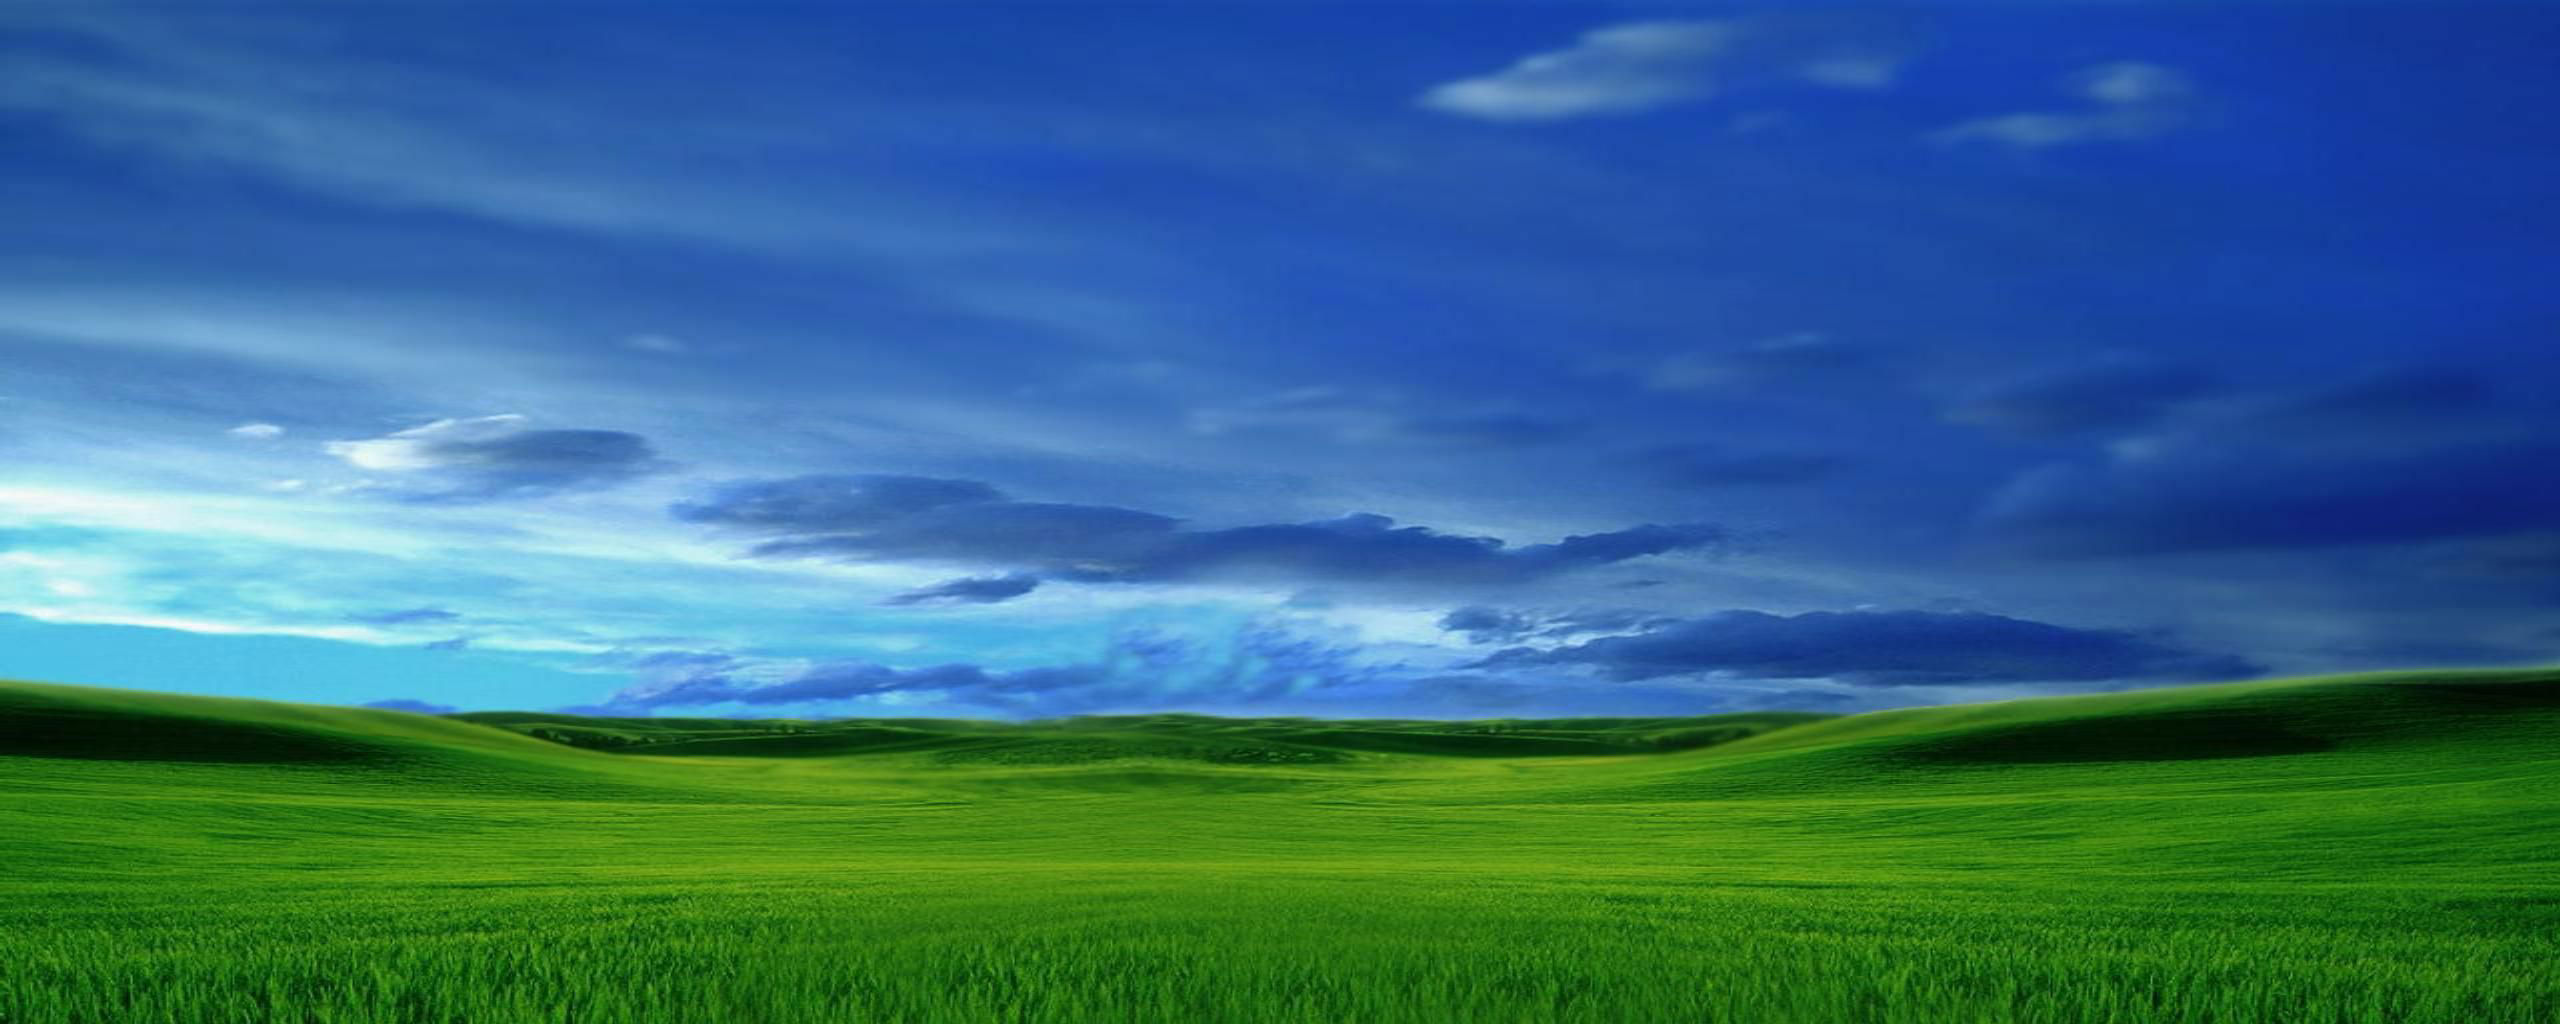 love live wallpapers for windows 7